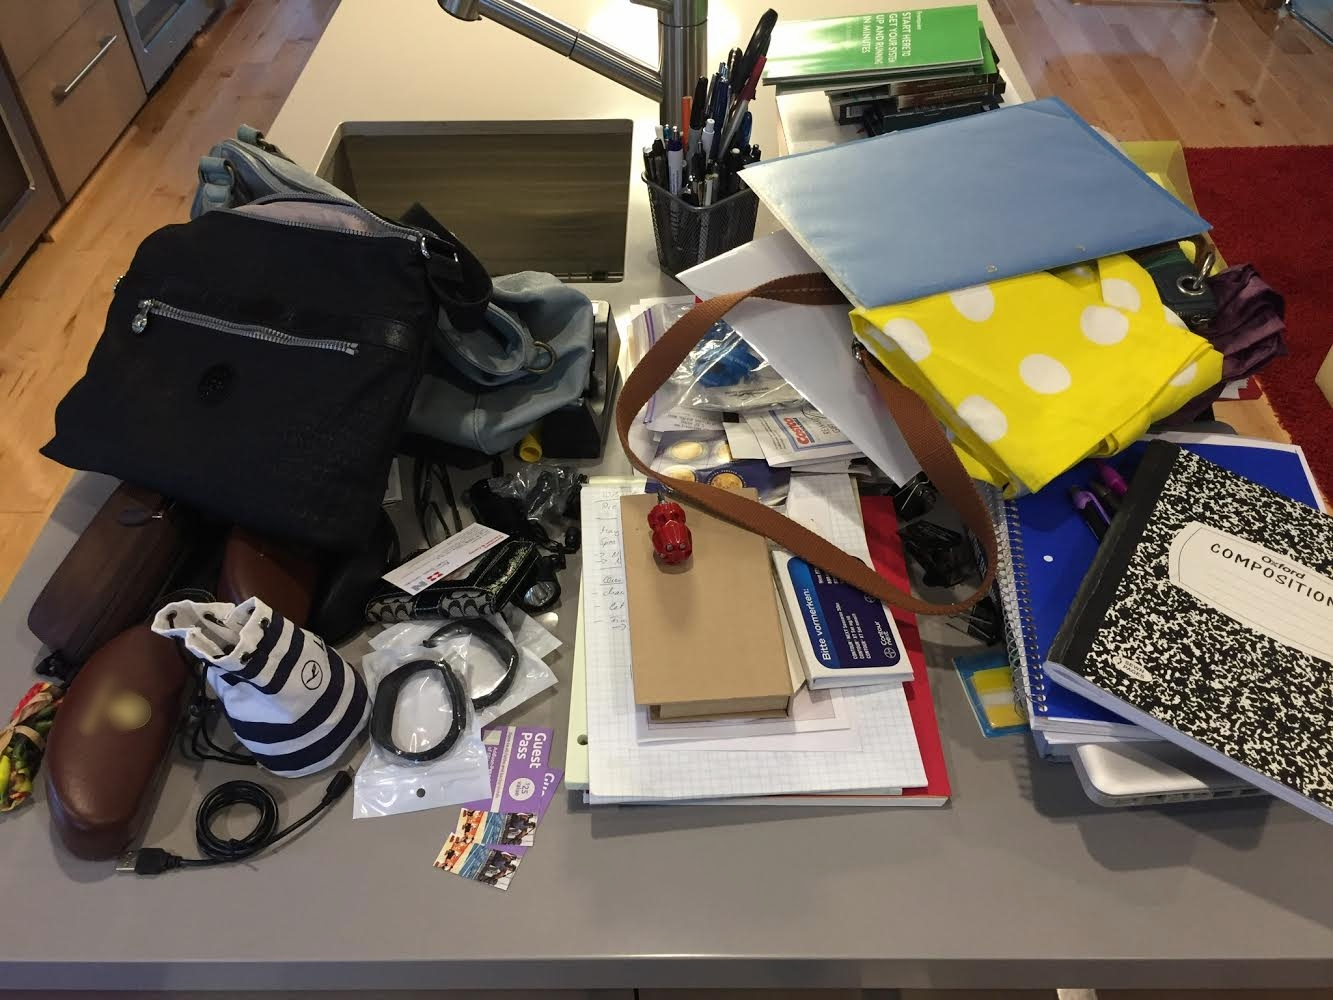 All the items in the desk.